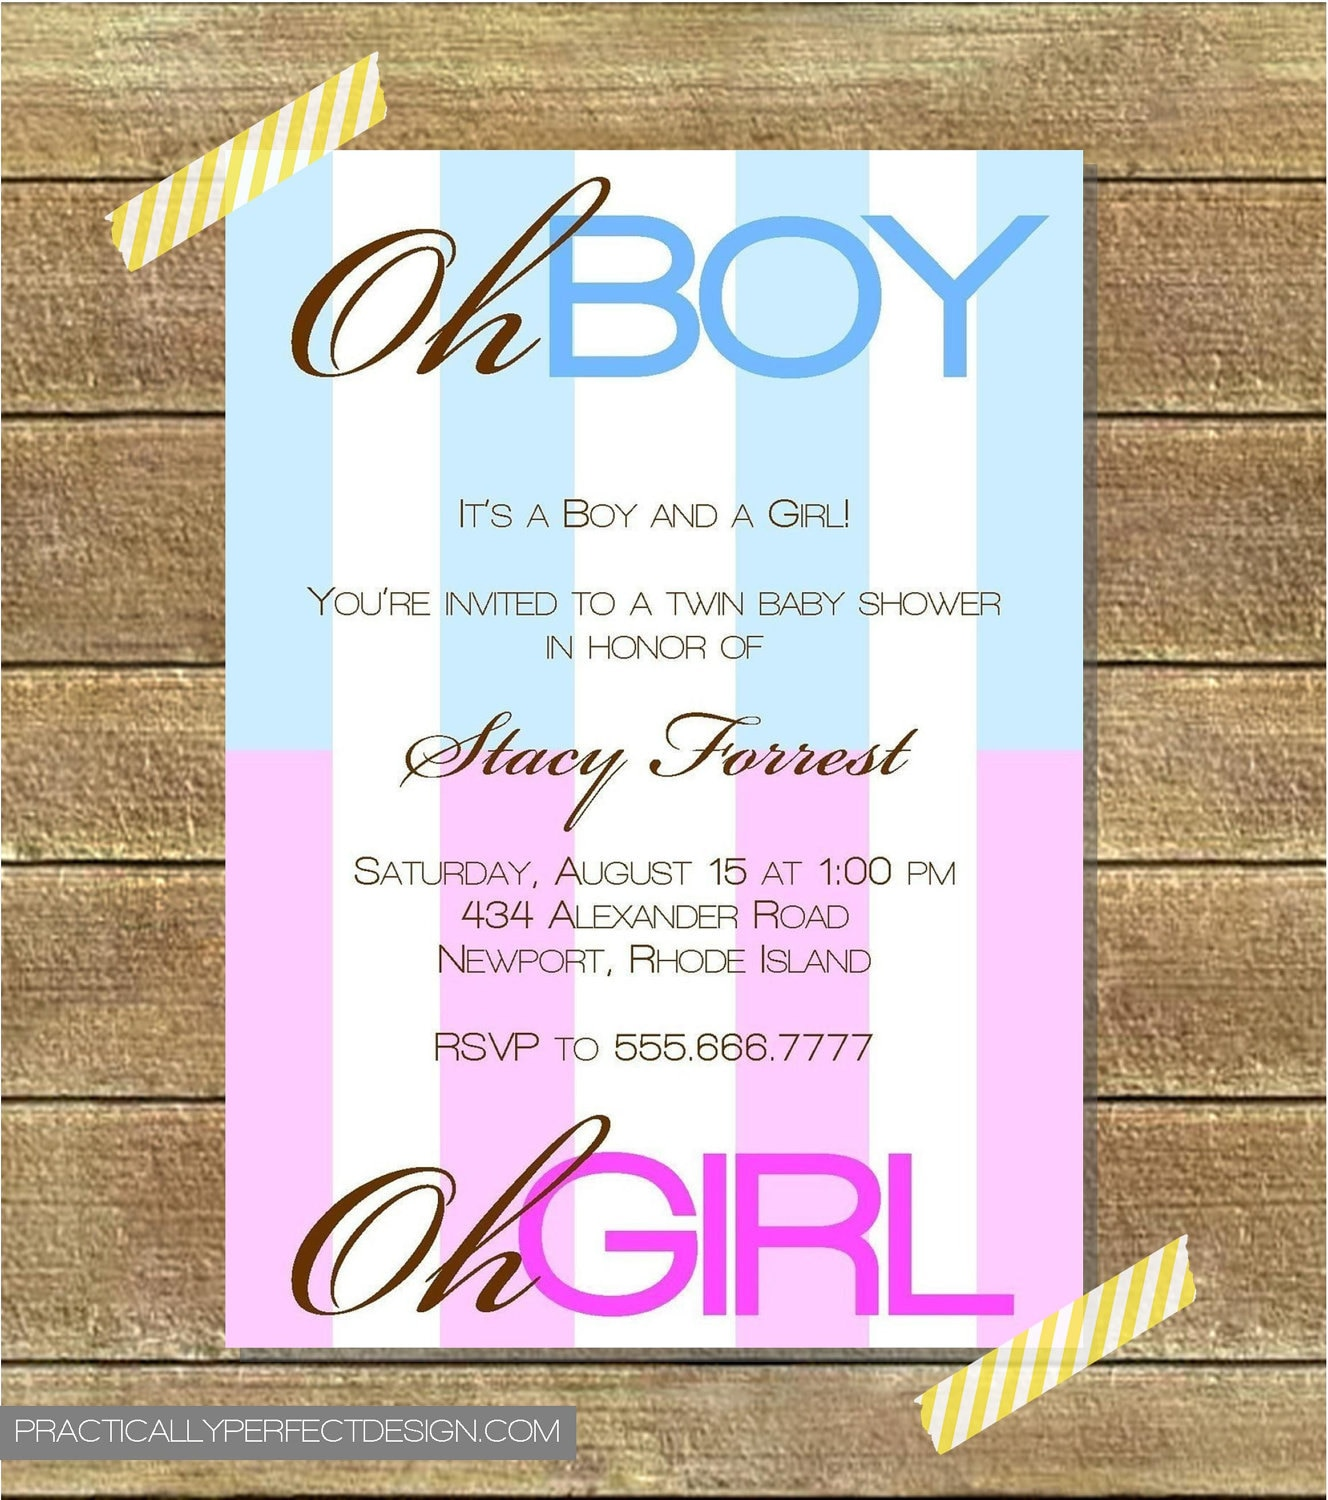 Baby Shower Invitations Wording For Boys: Twin Baby Shower Invitation Boy AND Girl